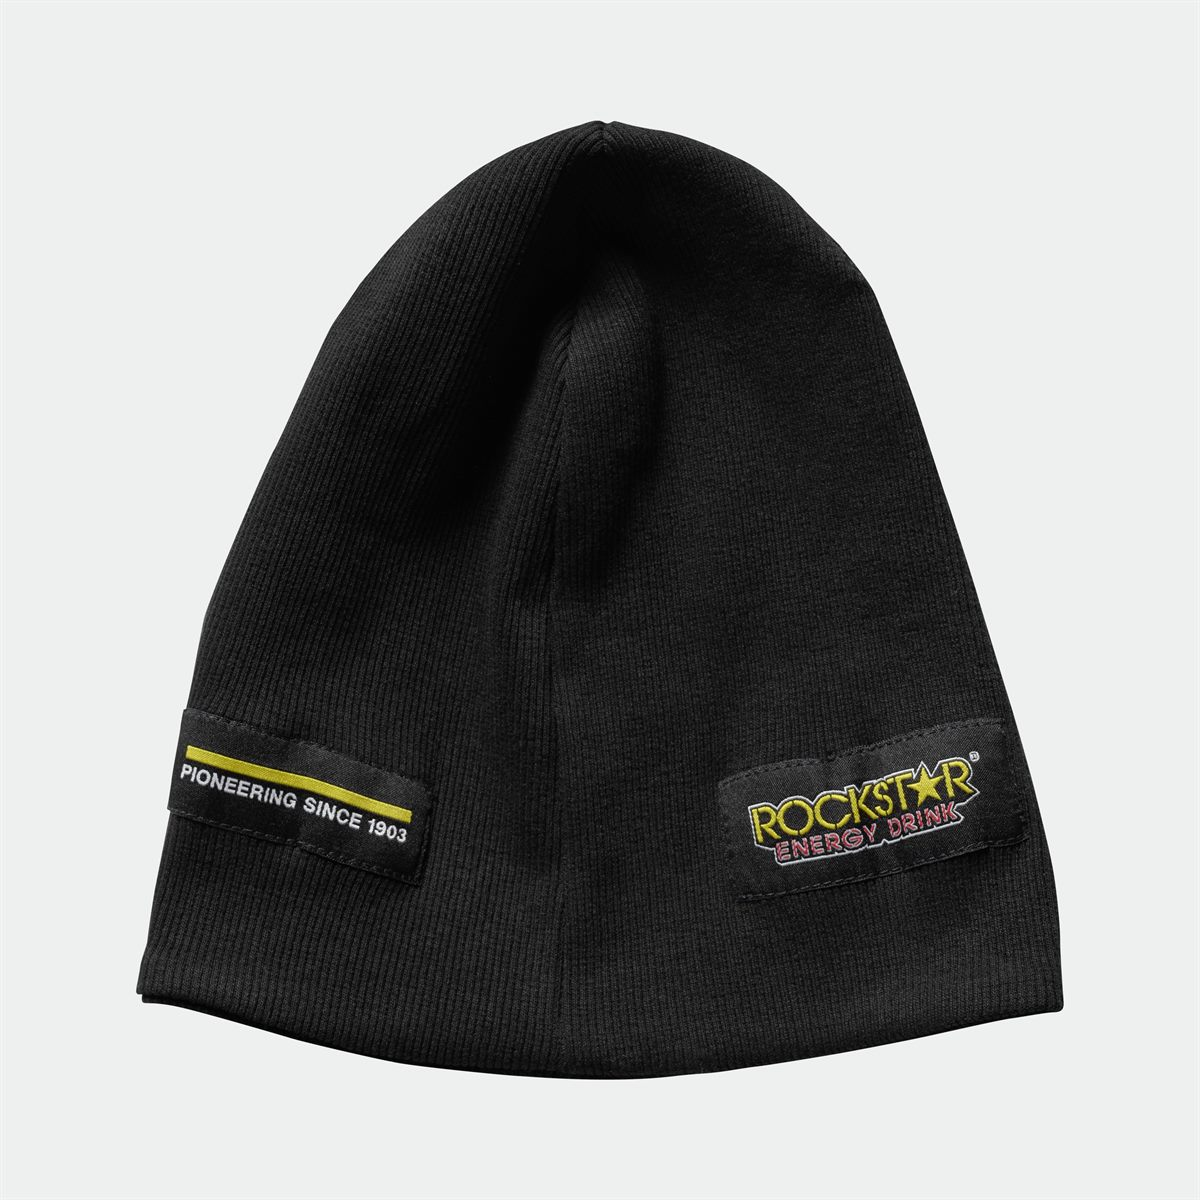 2019 Rockstar Energy Husqvarna Factory Racing Casual Clothing Collection - RS REPLICA TEAM BEANIE